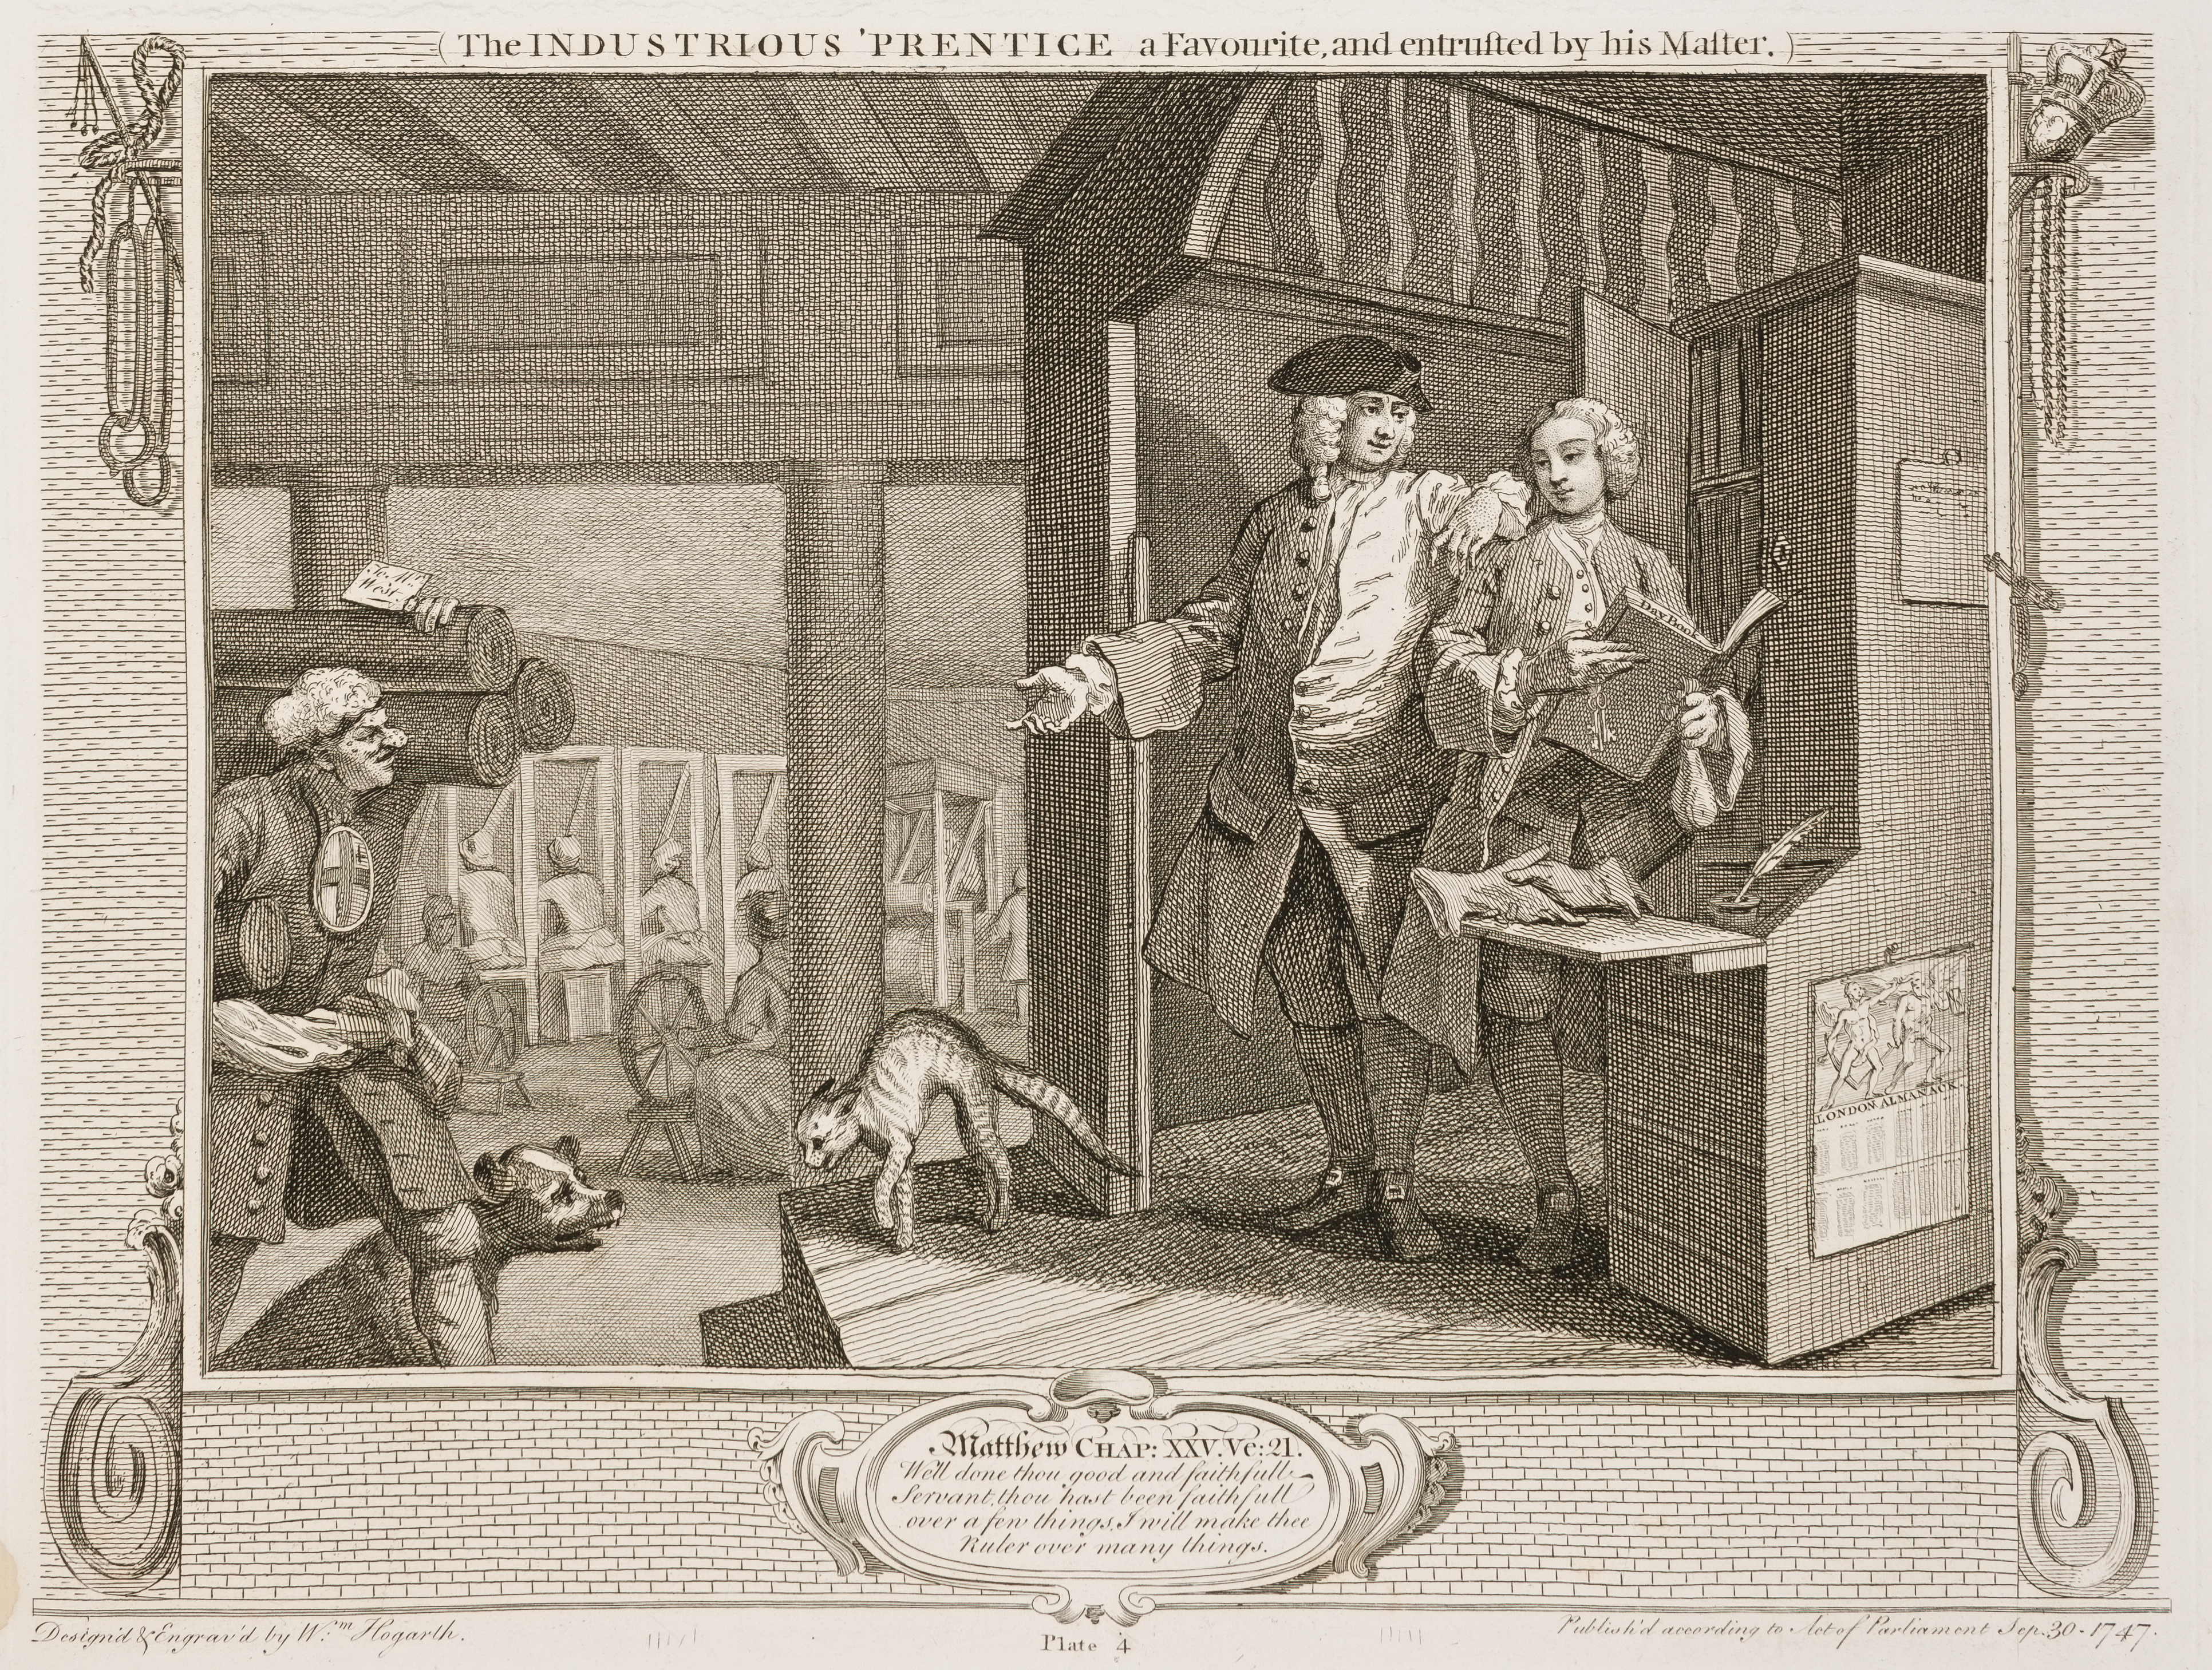 William Hogarth - Industry and Idleness - plate 4